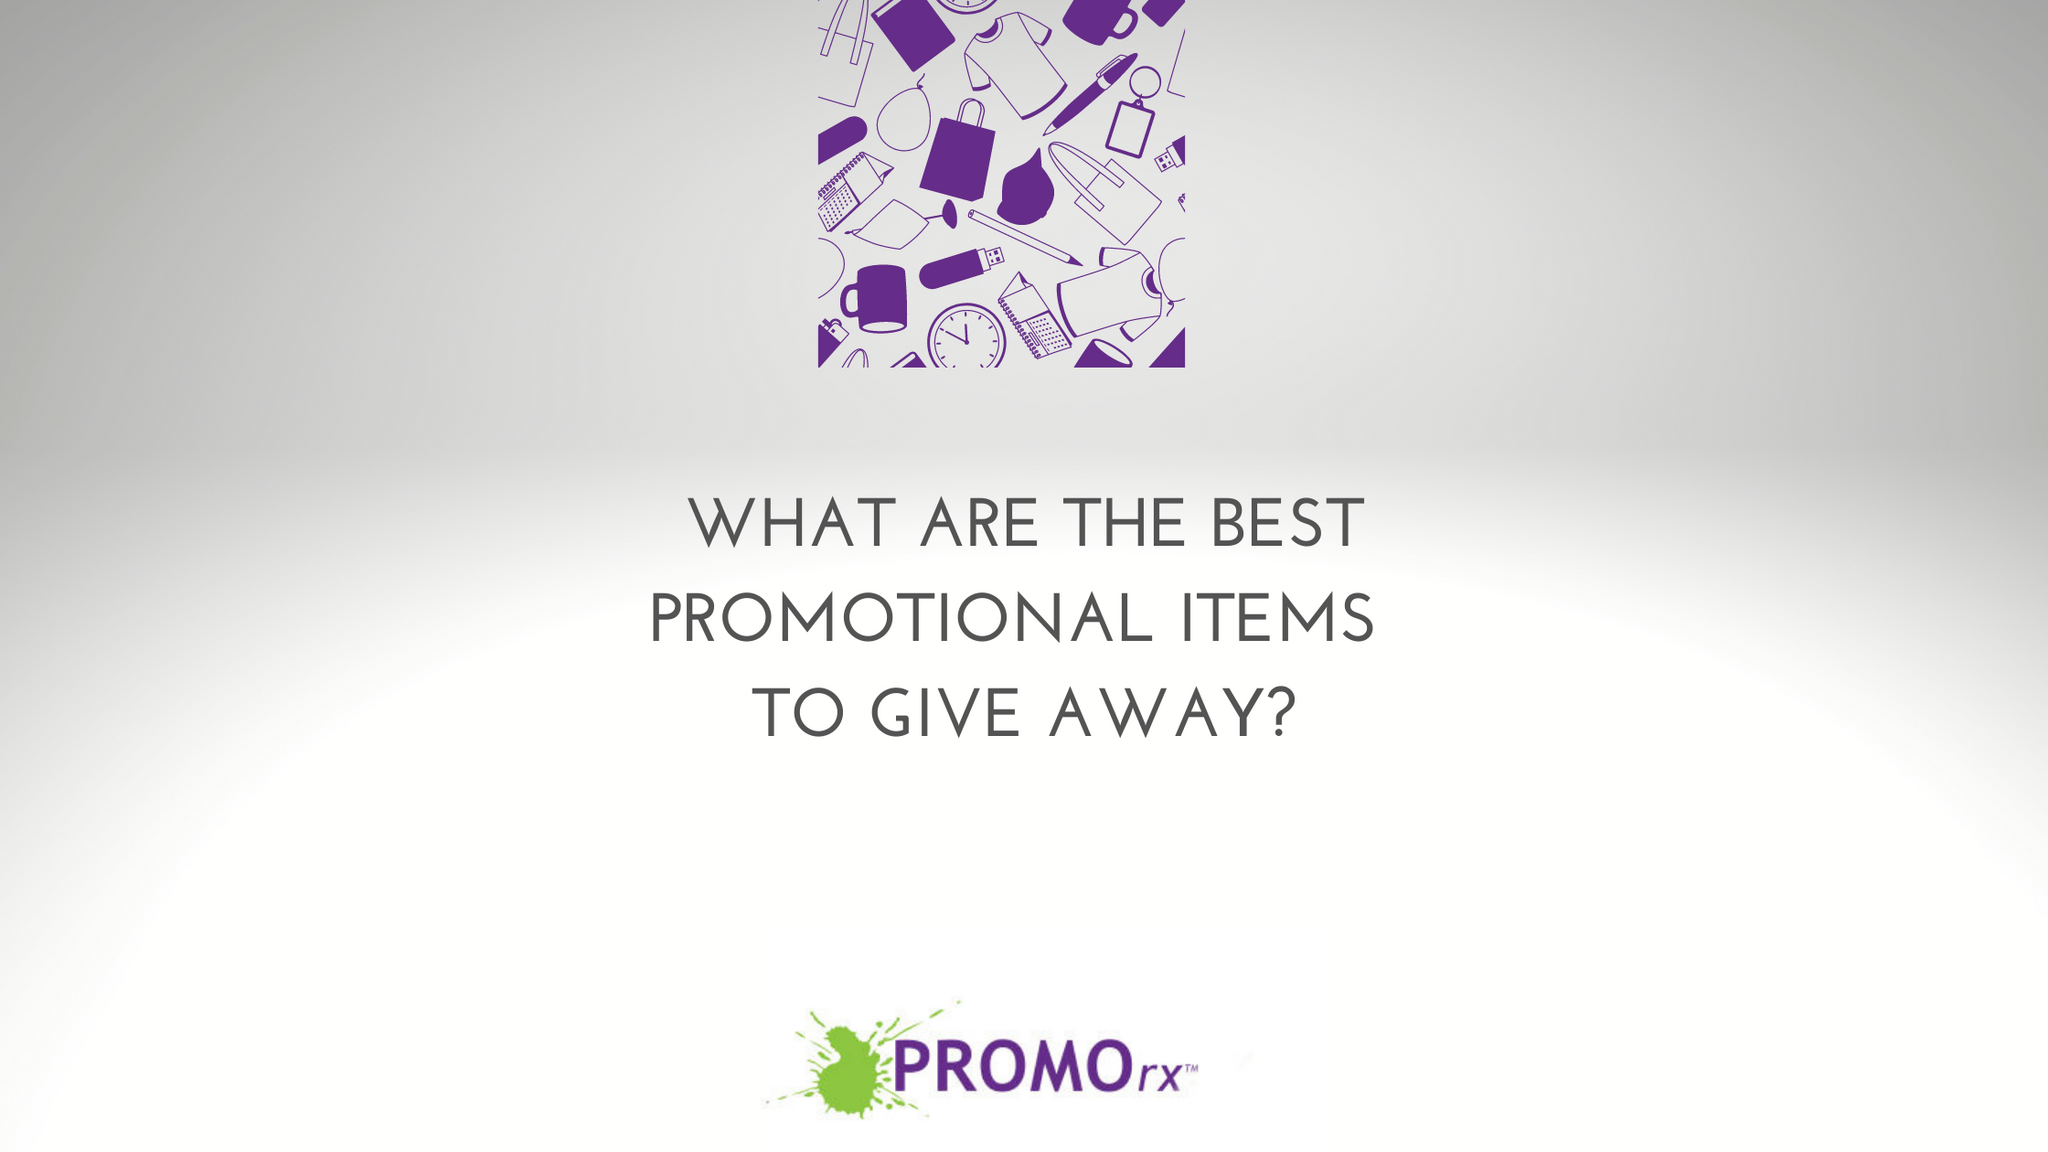 What Are the Best Promotional Items to Give Away?